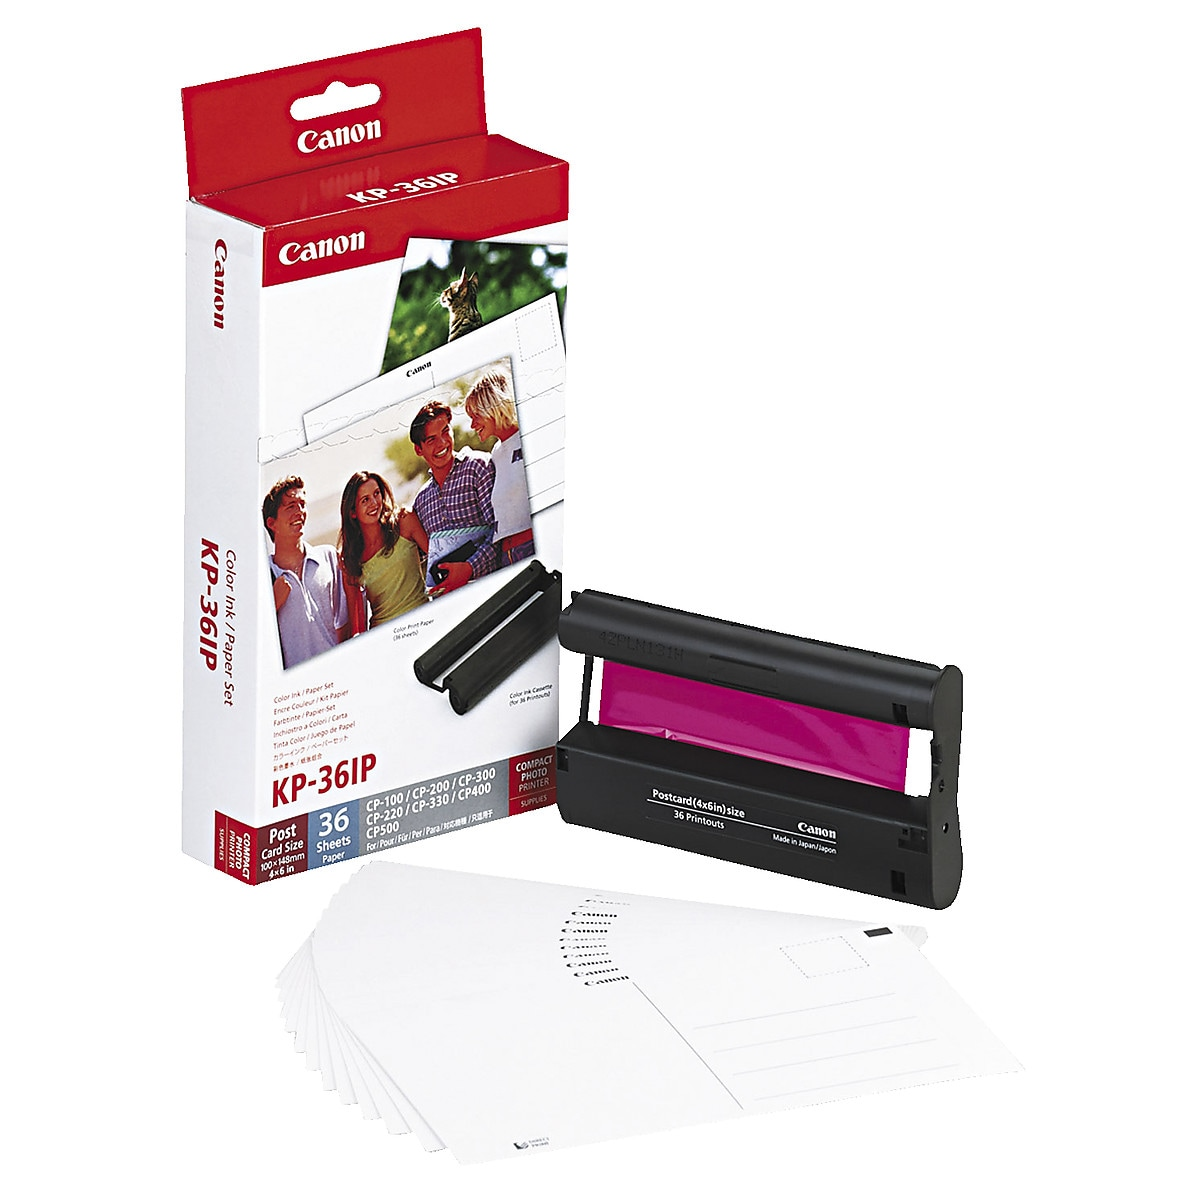 Canon KP-36IP Ink Cartridge Refill and Postcard Paper